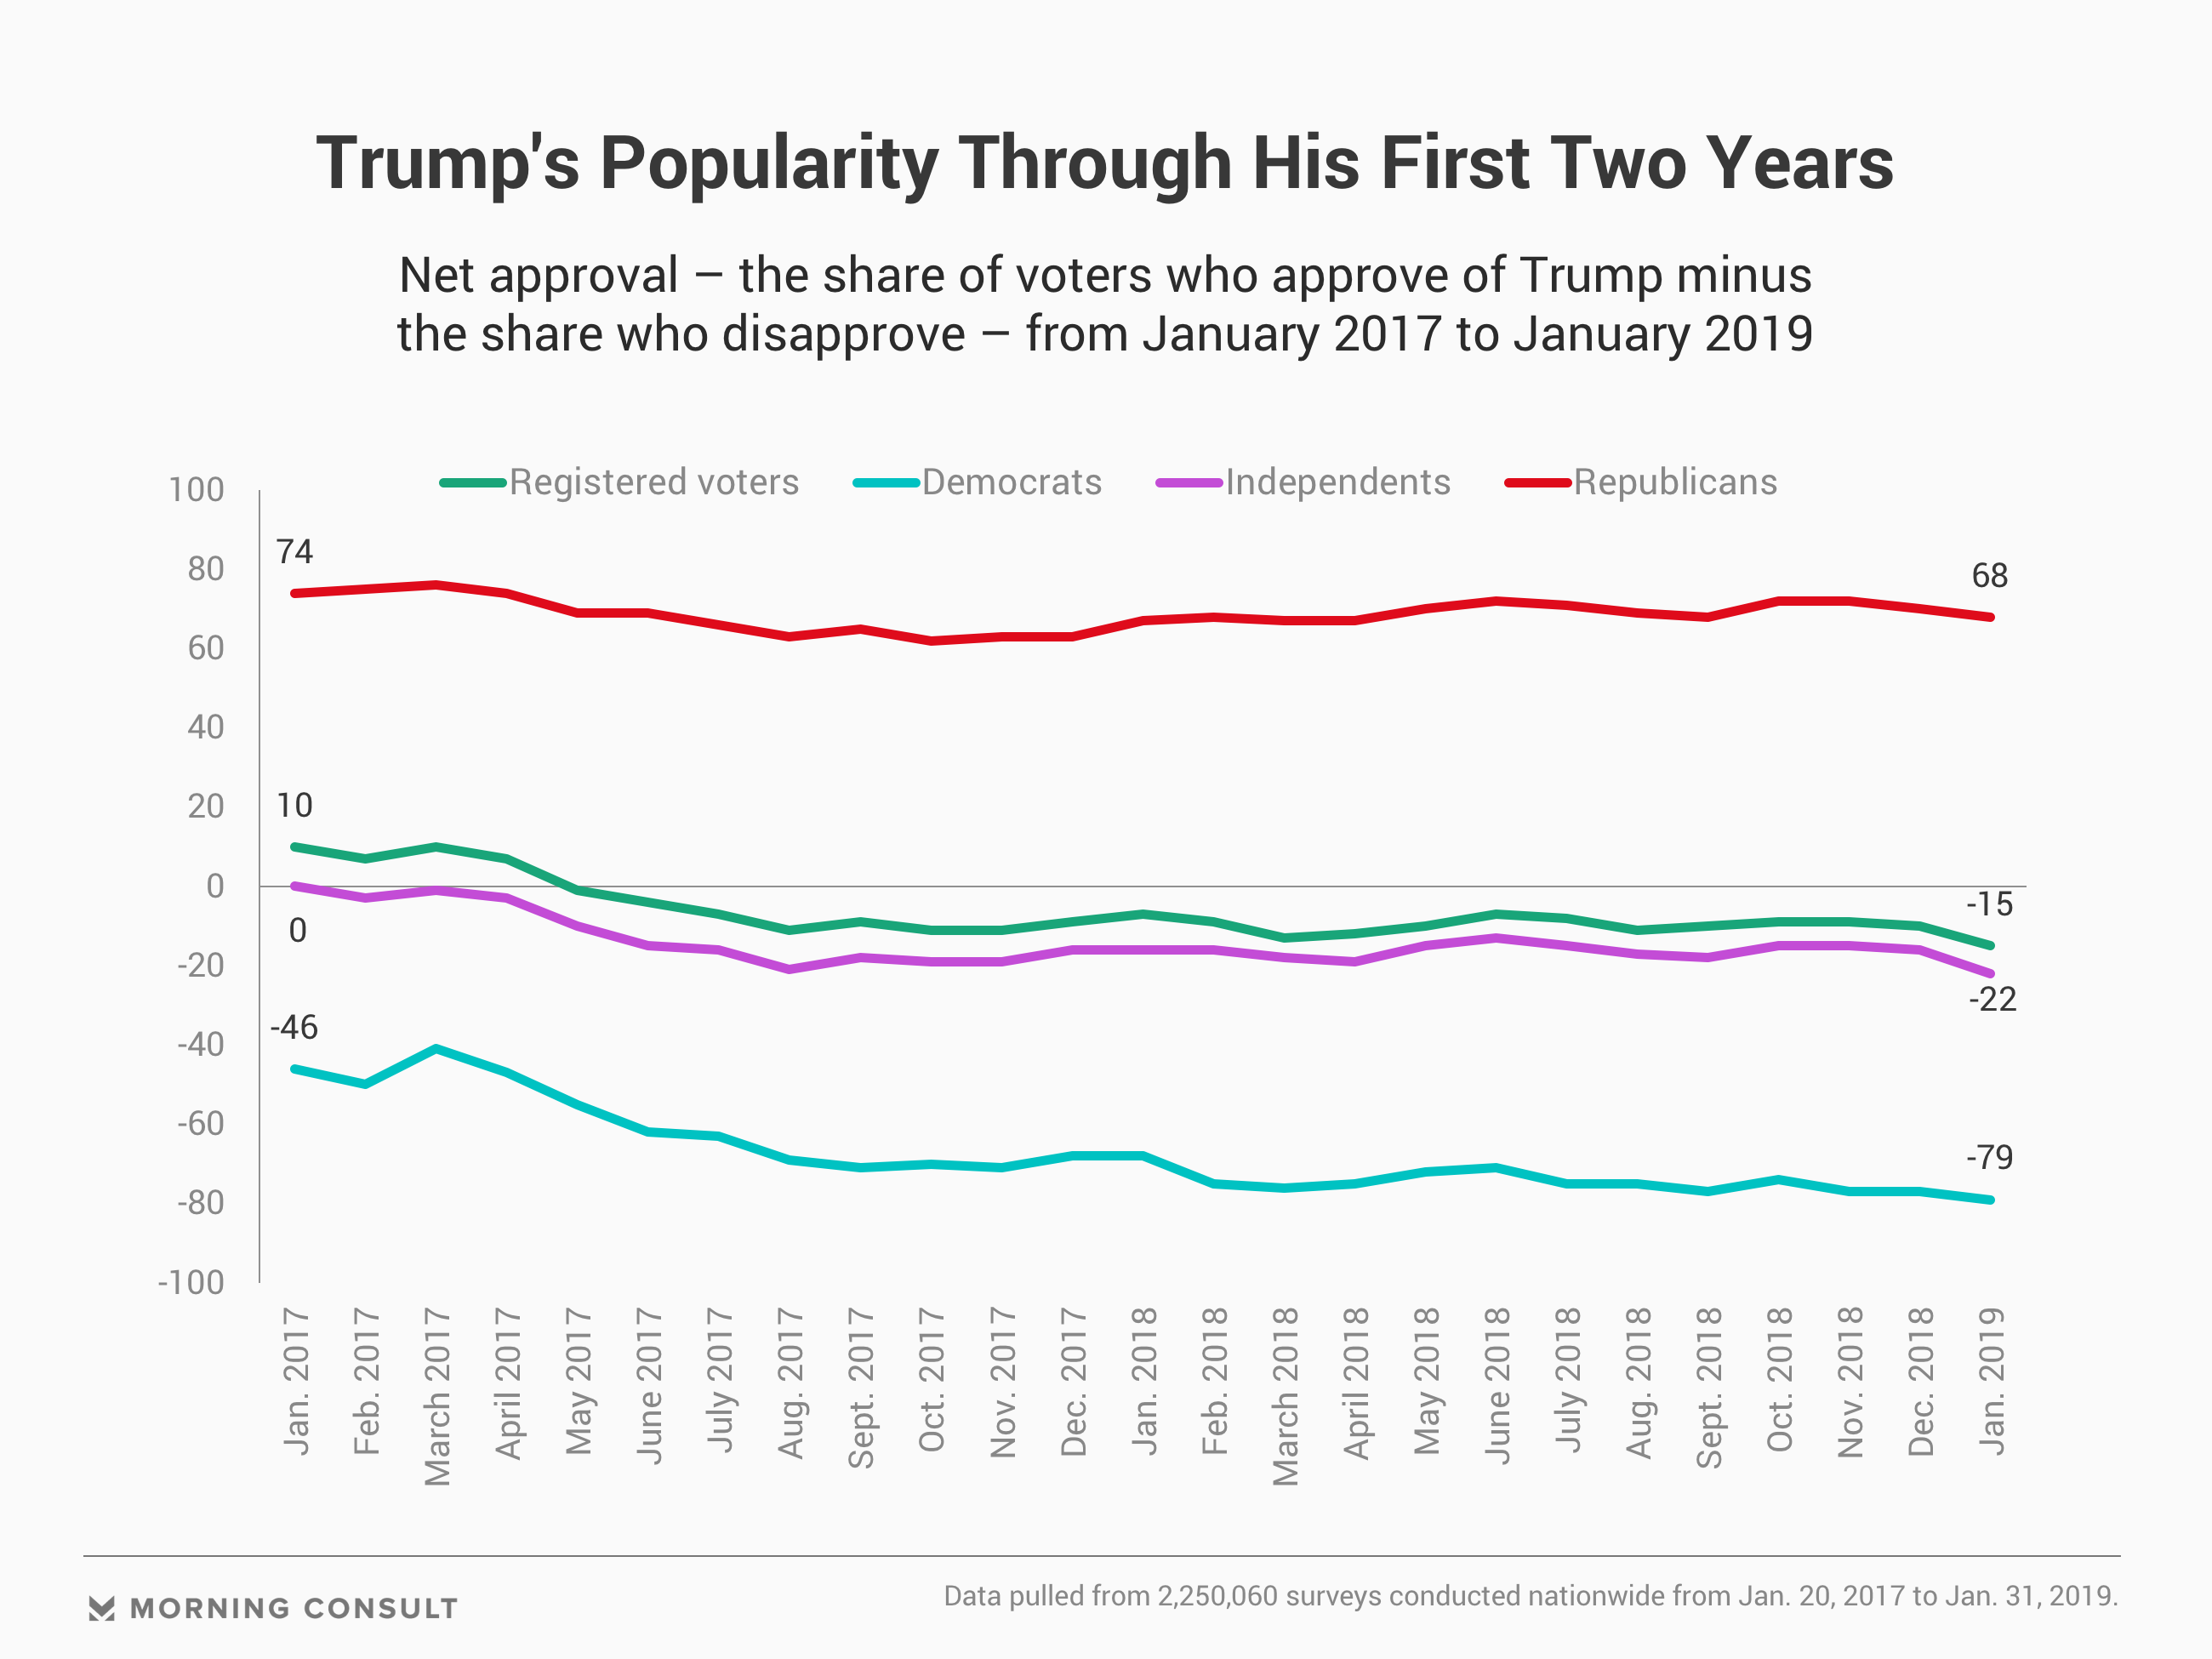 Trump's Popularity Slumps to Record Low in January